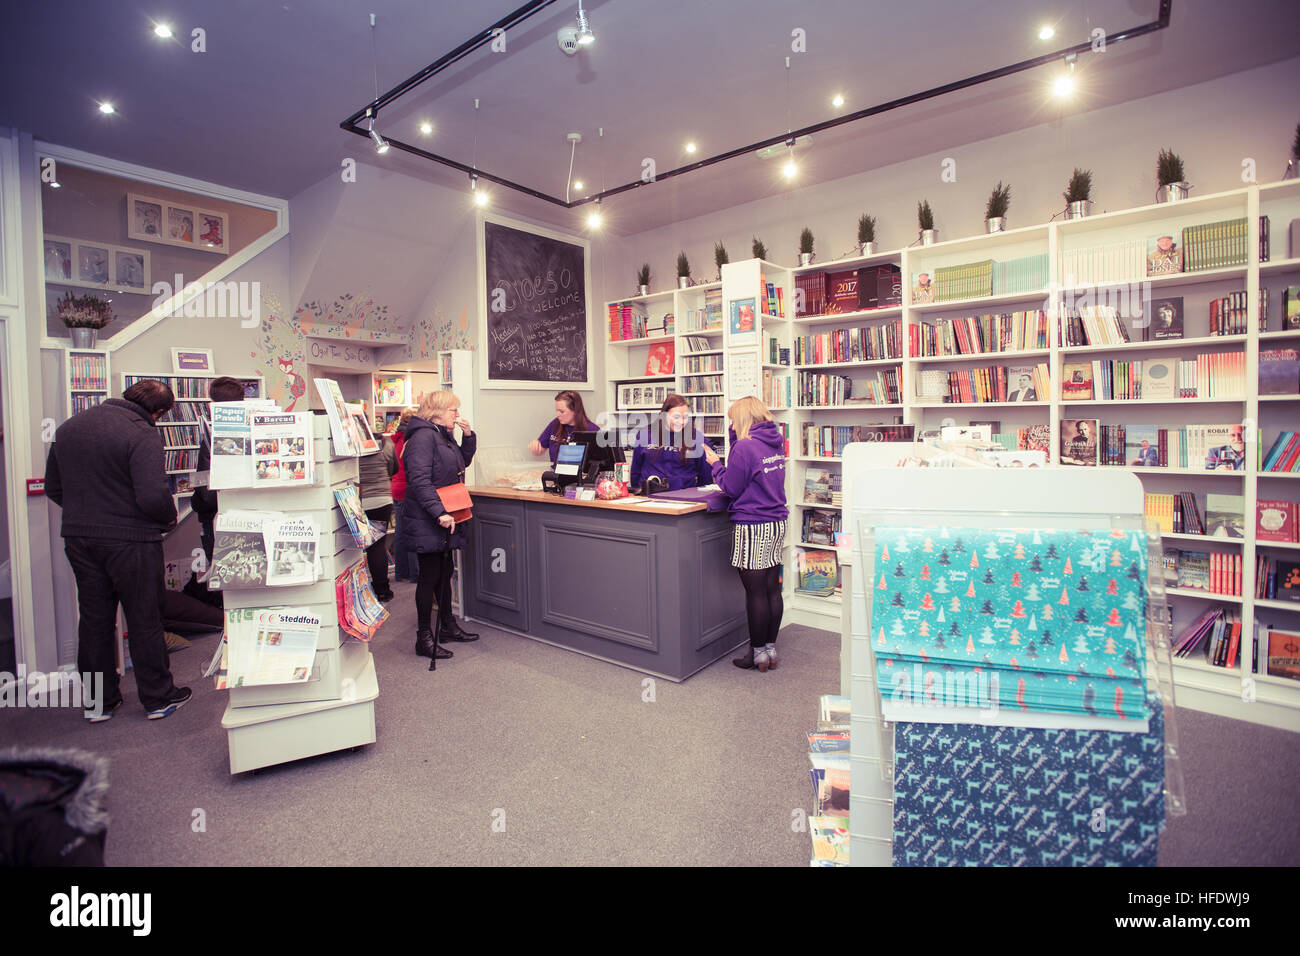 Siop Y Pethe Small Independent Welsh Language Bookshop And Gift Shop Aberystwyth Wales UK